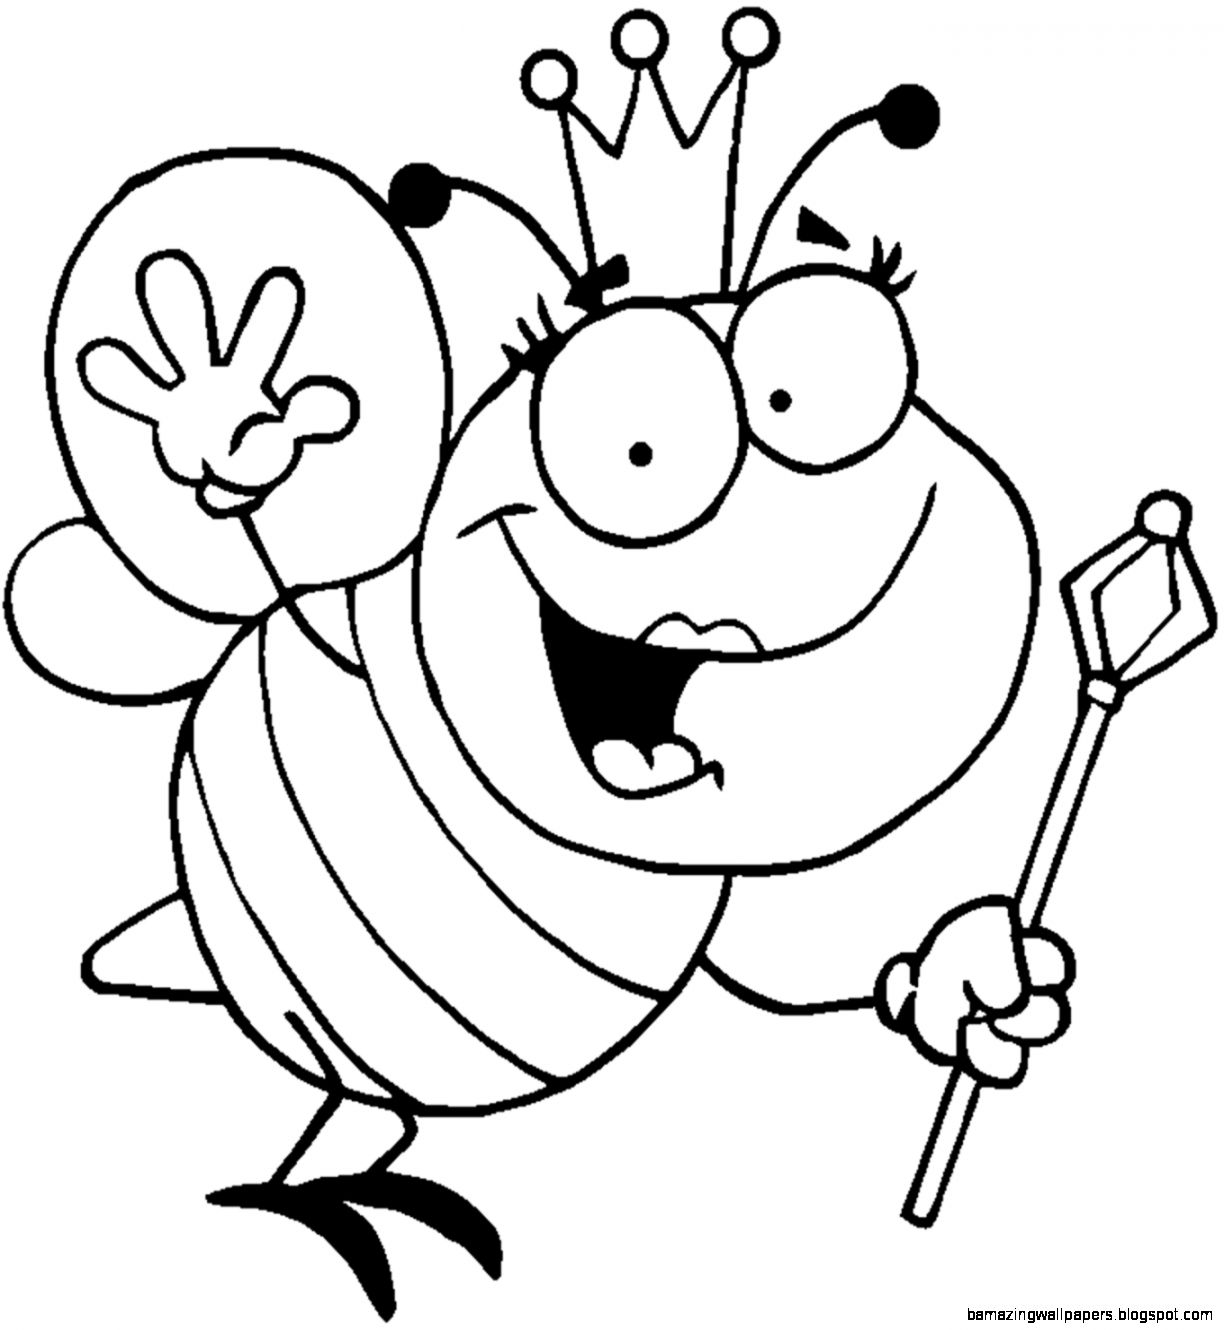 Queen Clip Art Black And White  Clipart Panda   Free Clipart Images